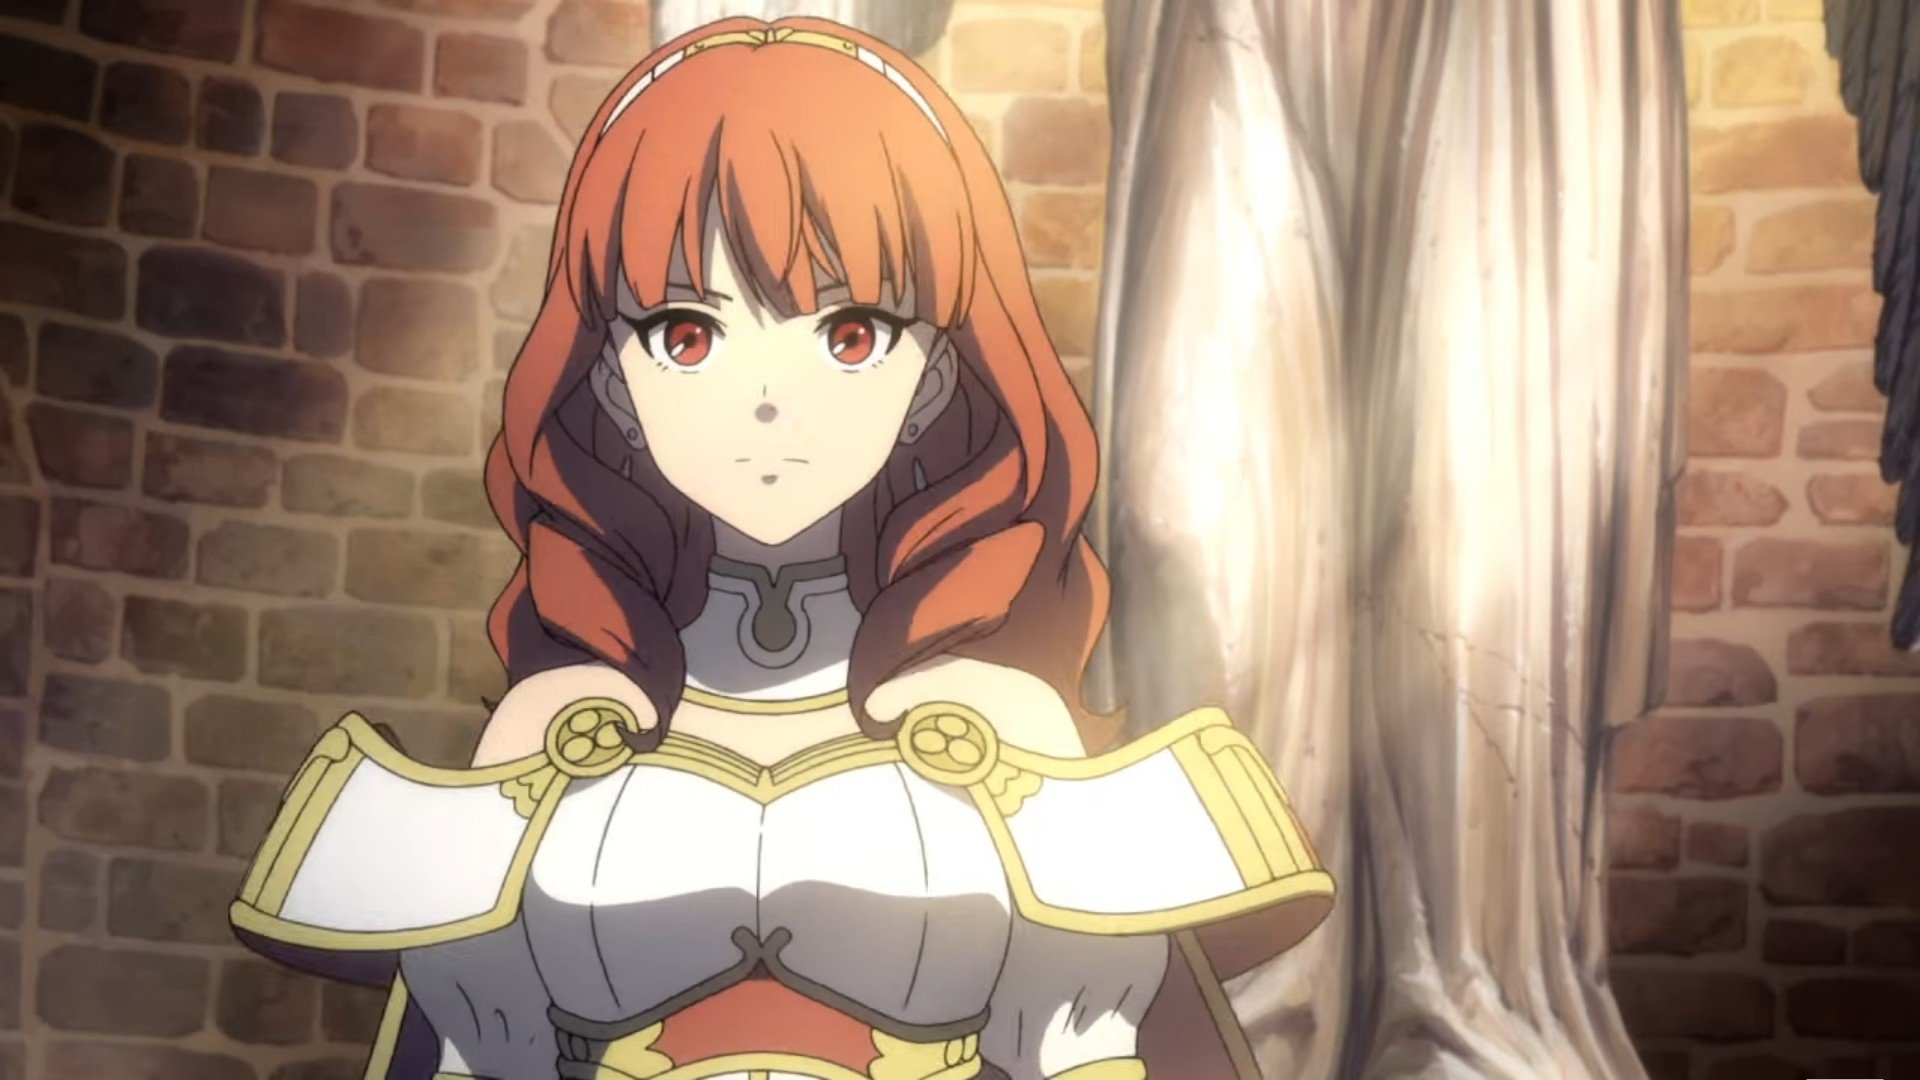 Modojo | Fire Emblem Echoes: Shadows of Valentia - What Fatigue Is And How To Cure It